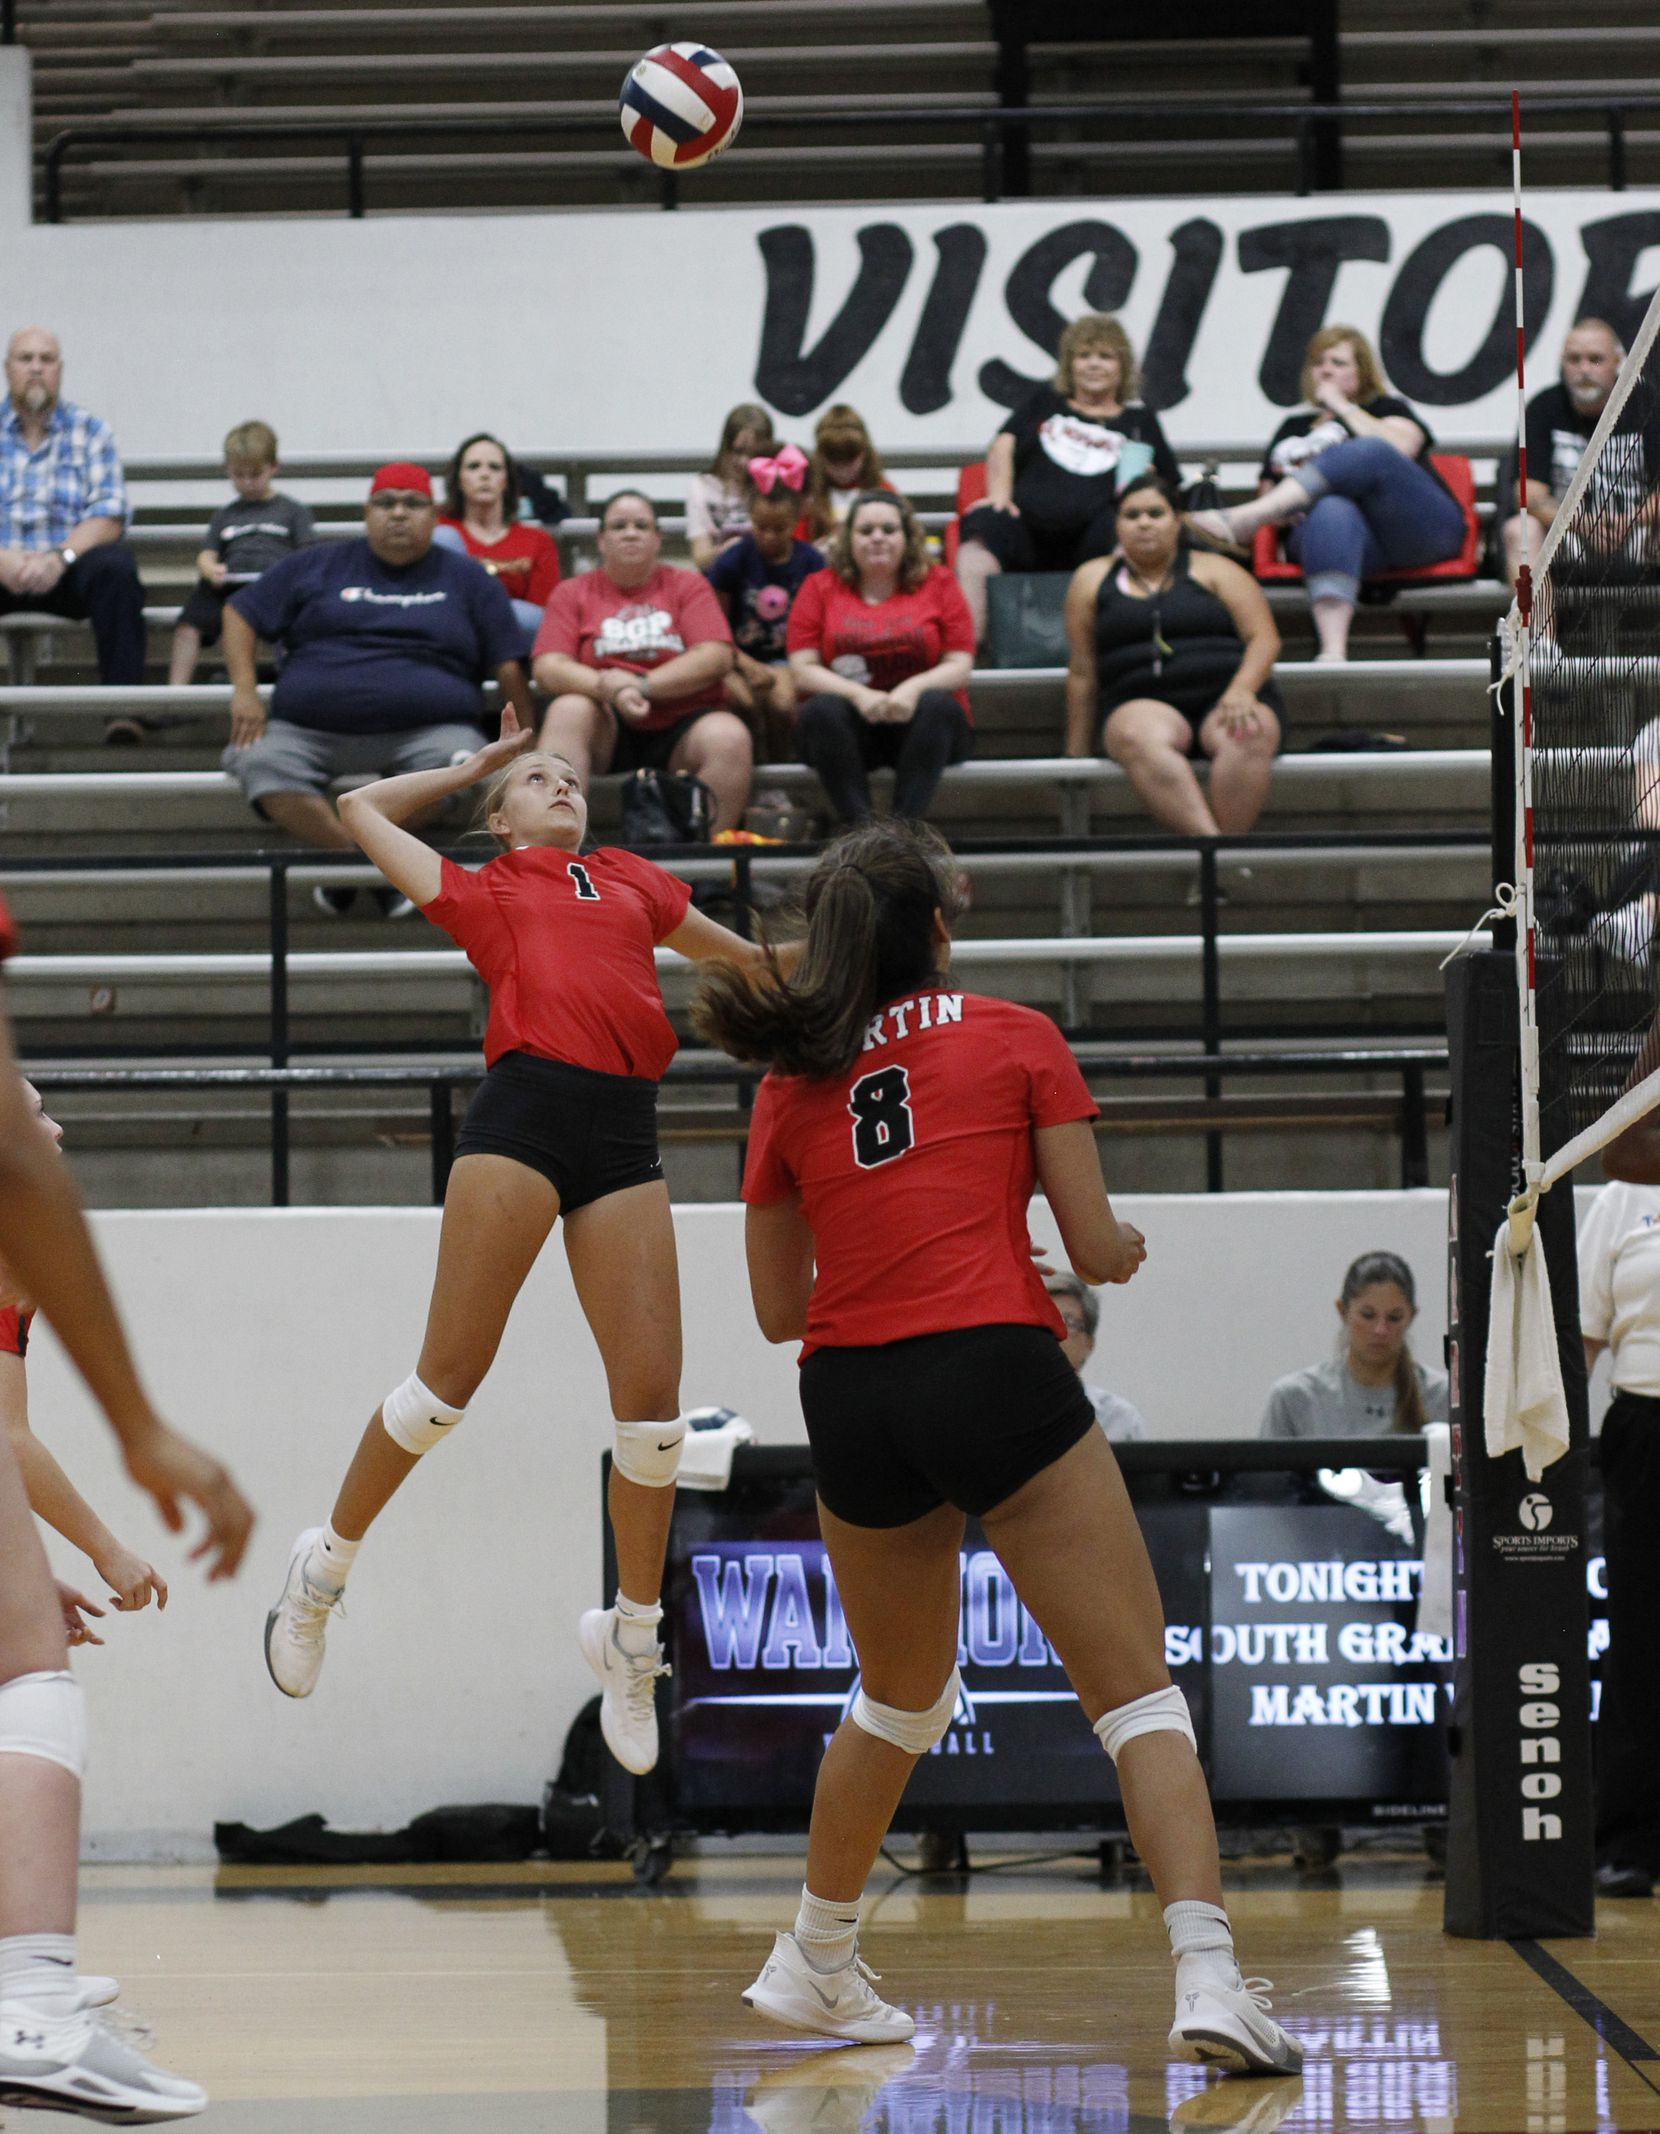 Arlington Martin's Desiree Reinwand (1) skies as she prepares to deliver a spike during the 3rd set of the Warriors' straight set victory over South Grand Prairie. The two teams played their volleyball match at Arlington Martin High School in Arlington on September 14, 2021. (Steve Hamm/ Special Contributor)